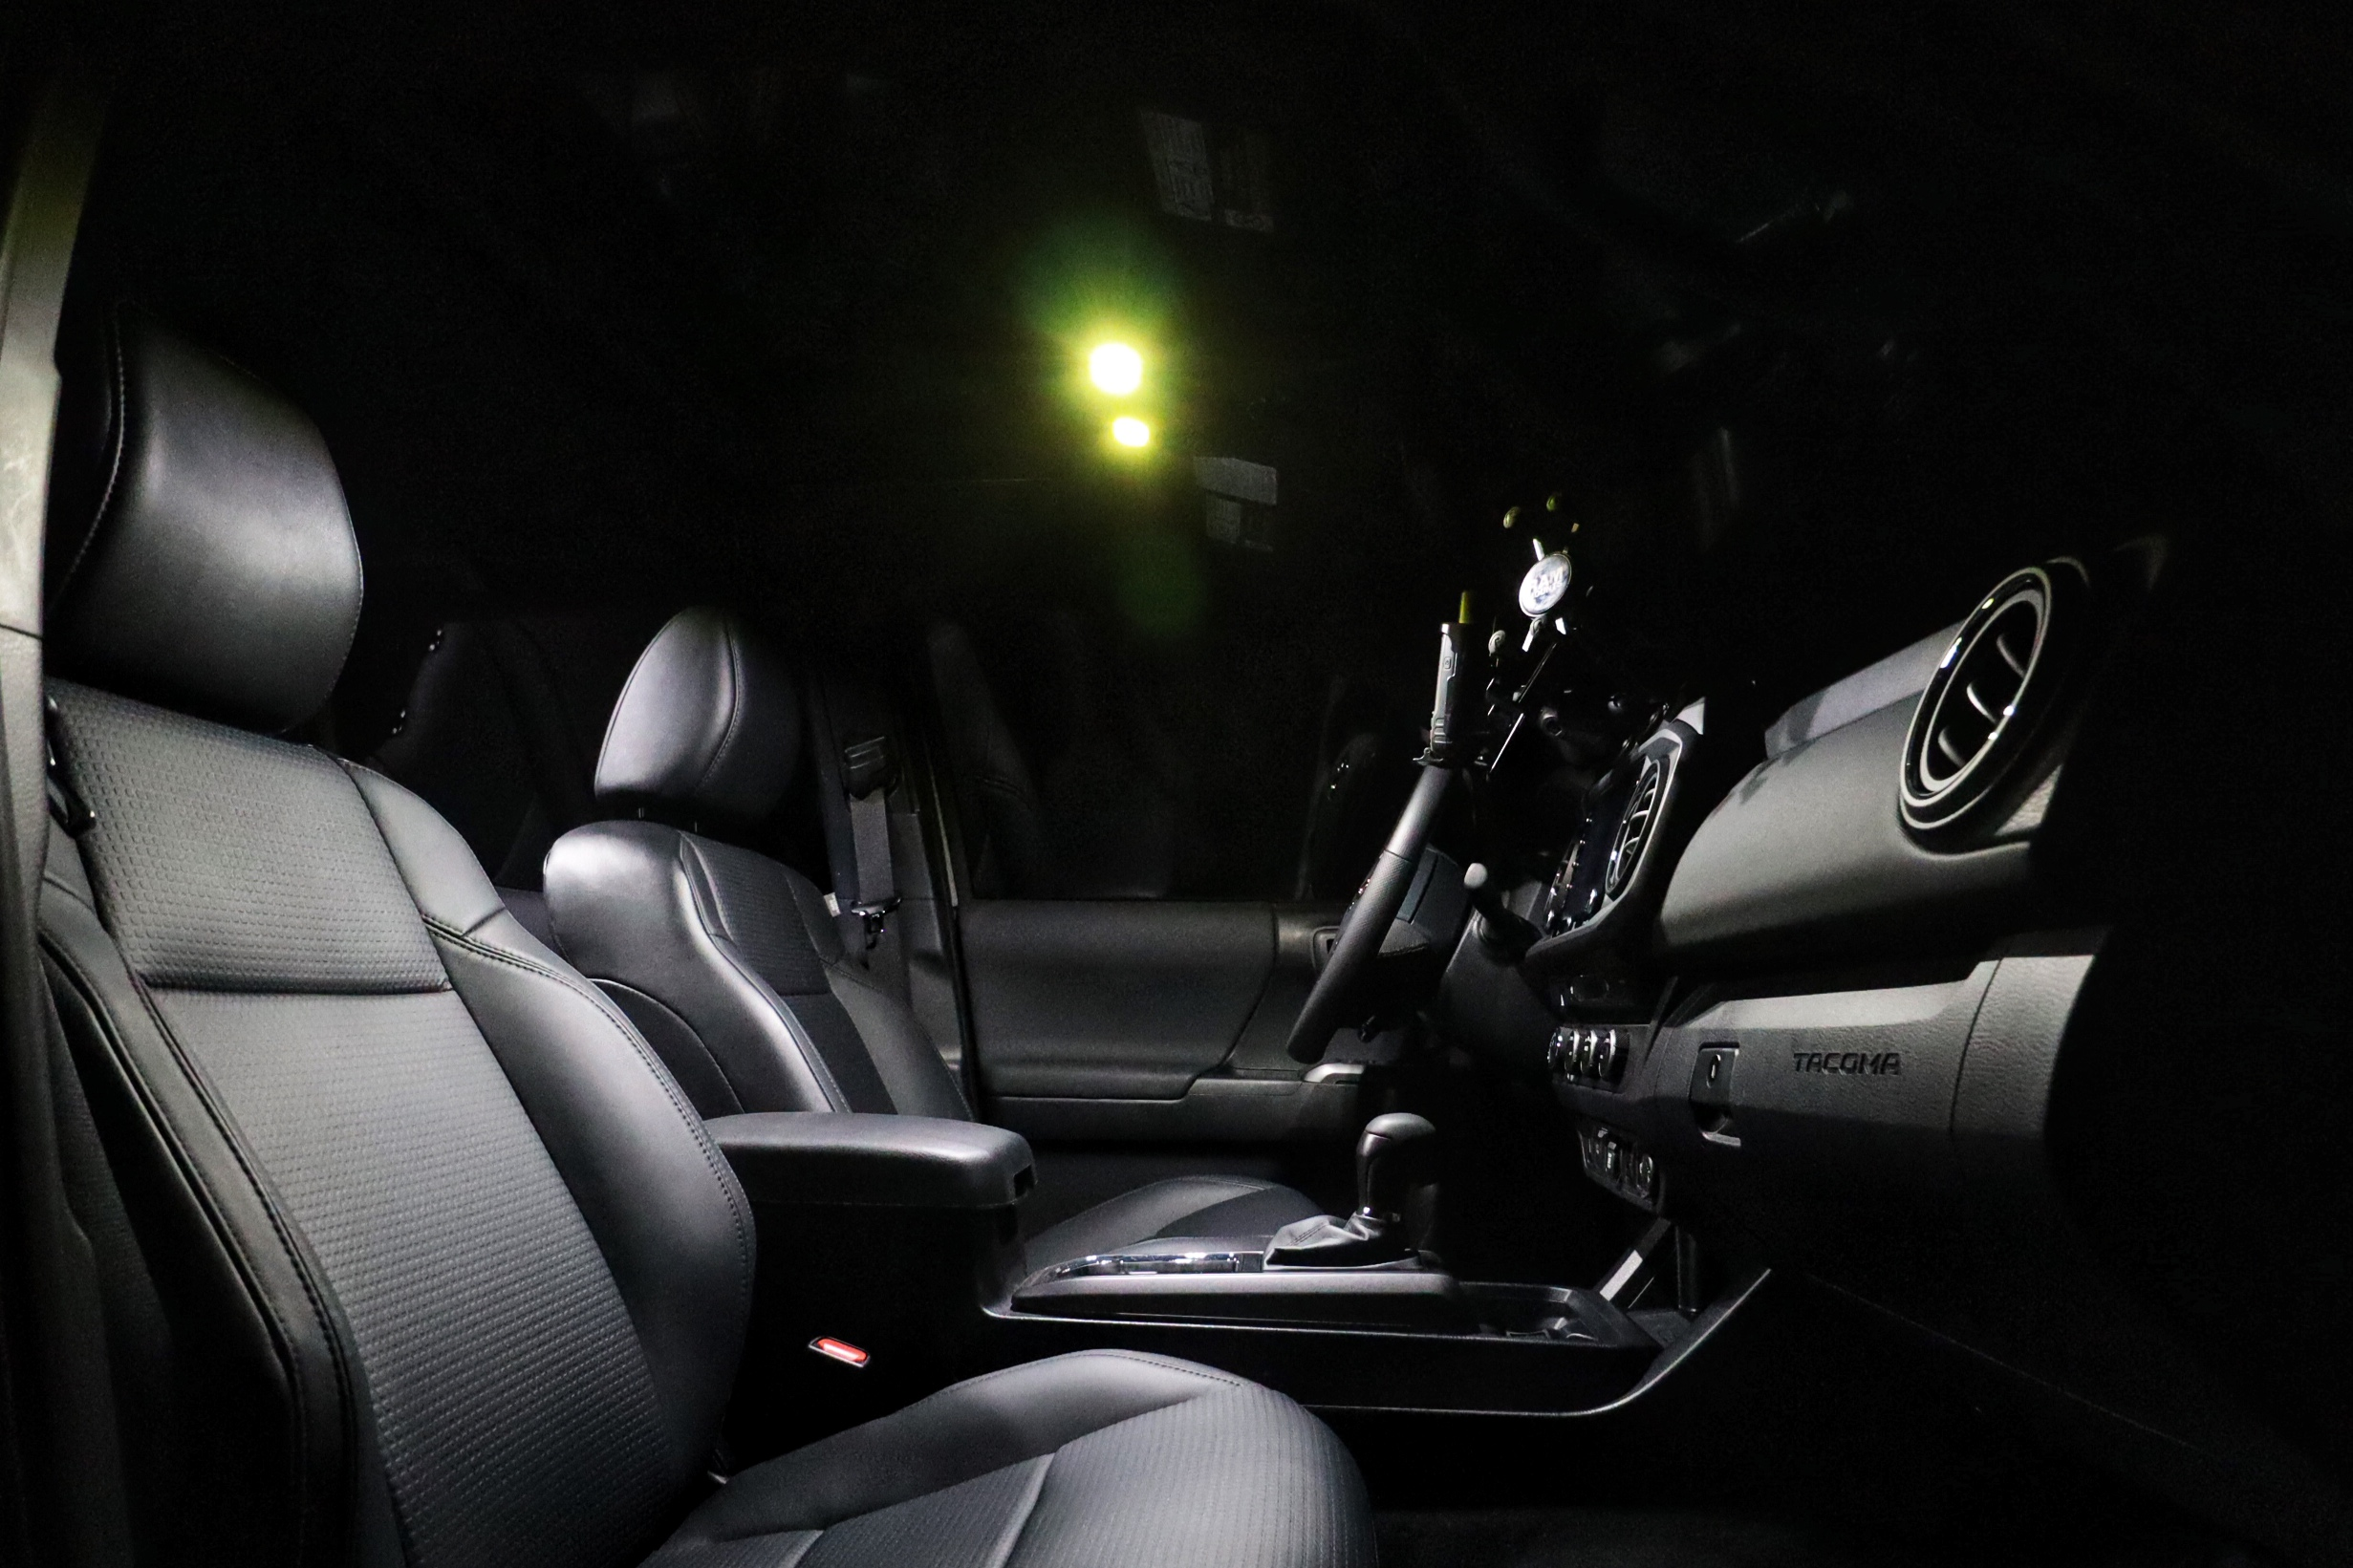 Meso Customs Ultimate Map Lights & Dome Light - Install for 3rd Gen Tacoma